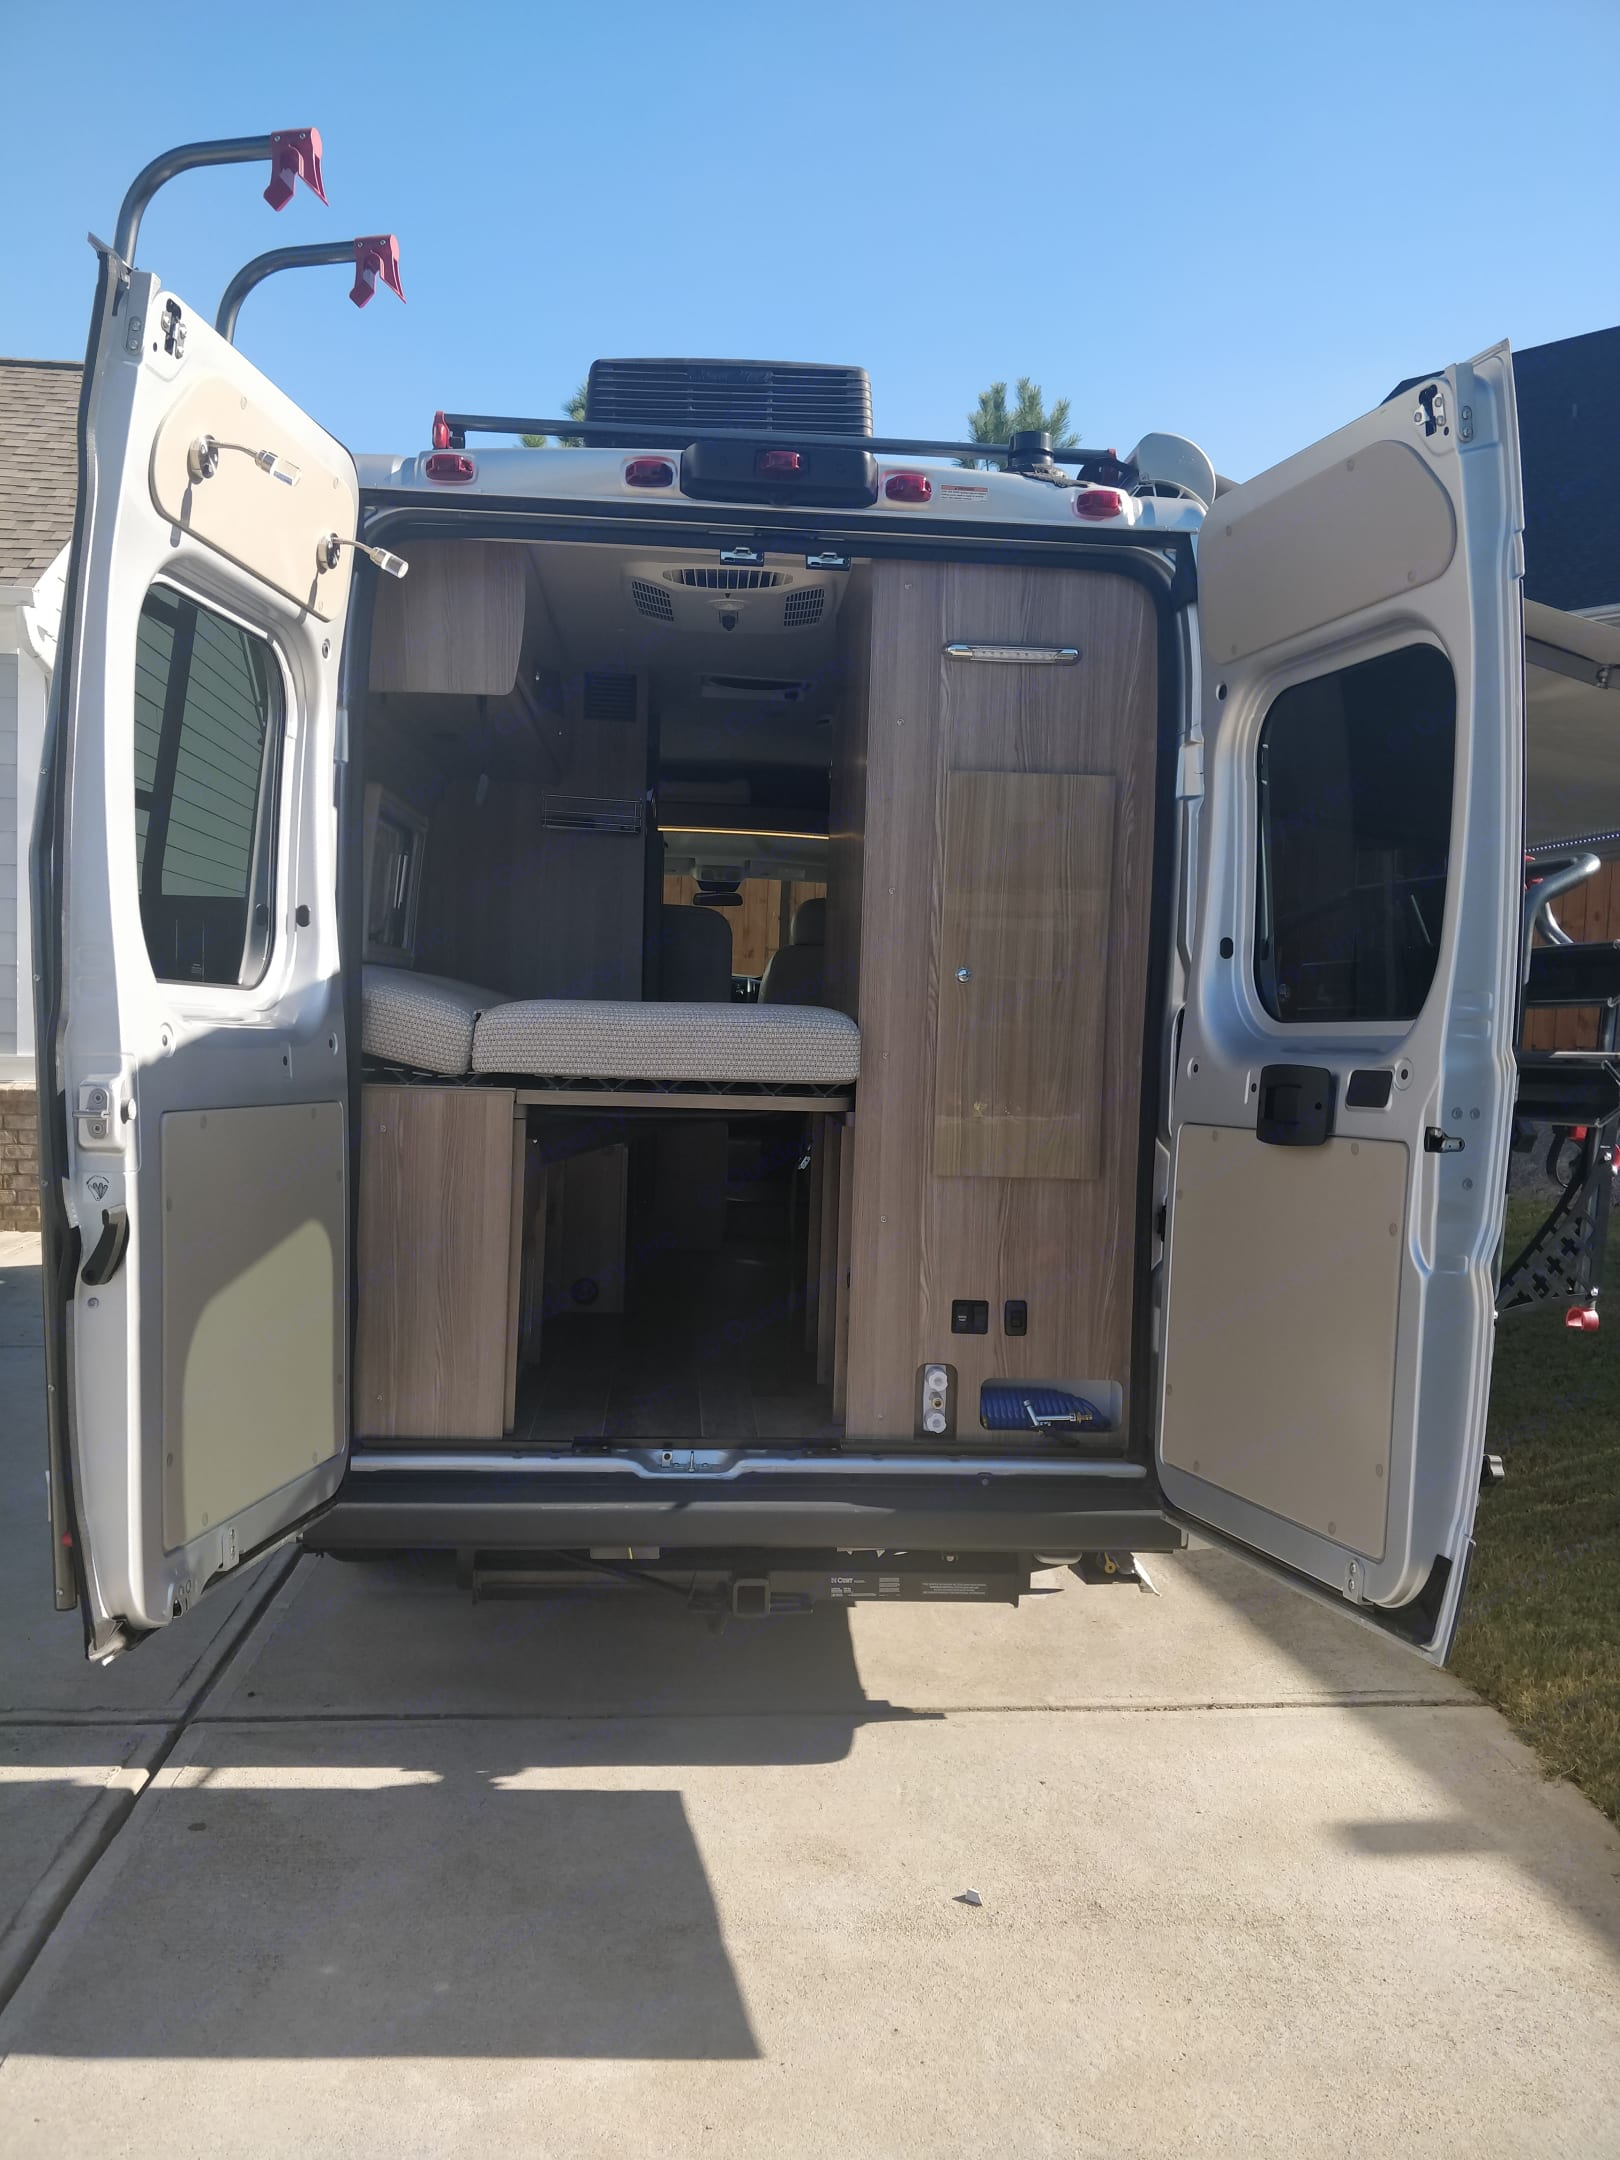 Murphy bed sleeps two and is cozy. Storage under bed is handy.  Water house for outside showering or cleaning dirty bikes and feet.. Winnebago Travato 2019